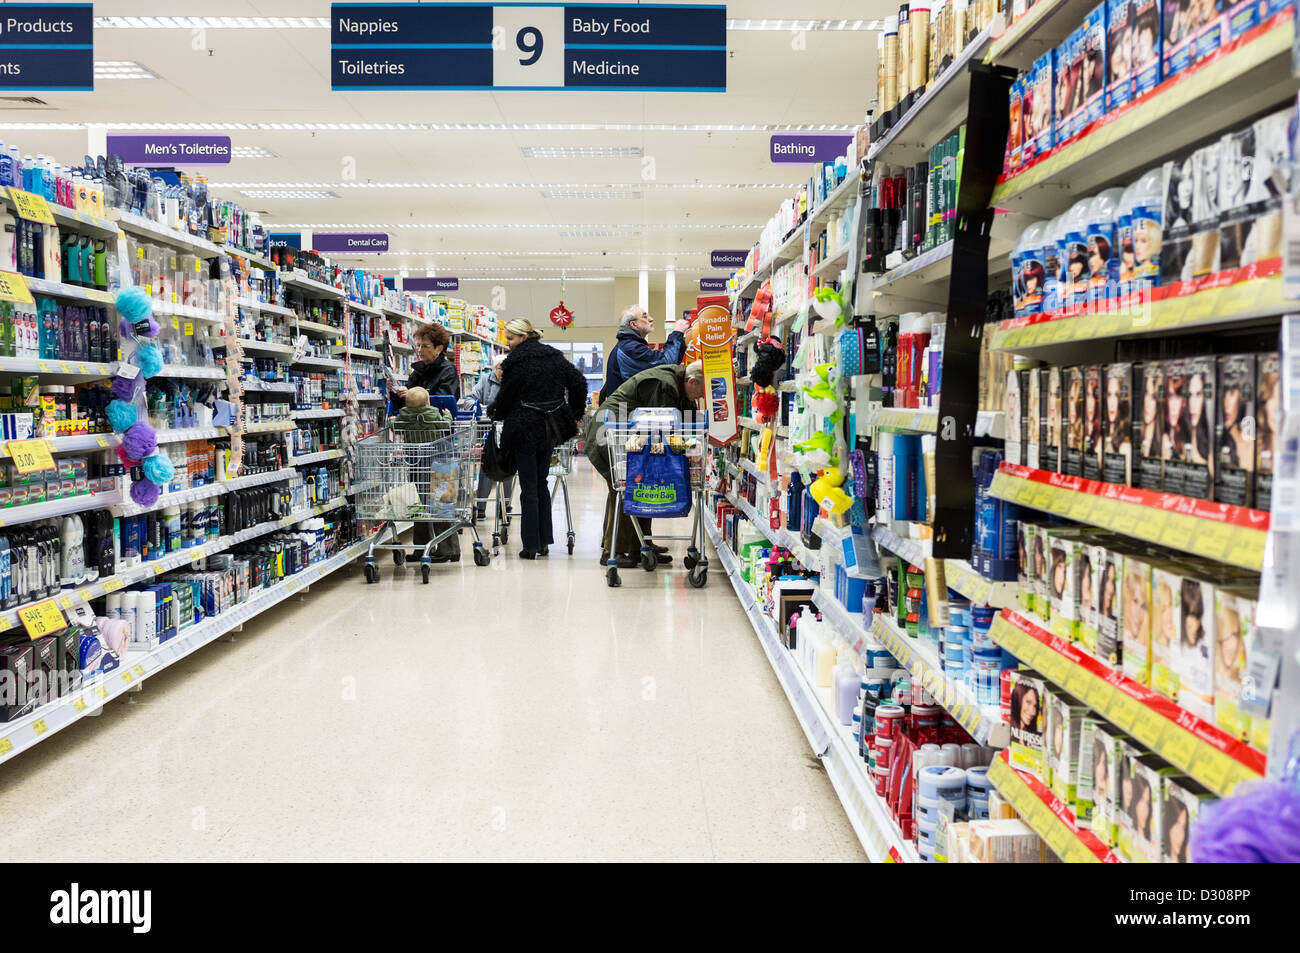 Supermarket aisle and shelves - Shoppers in a Tesco supermarket - Stock Image